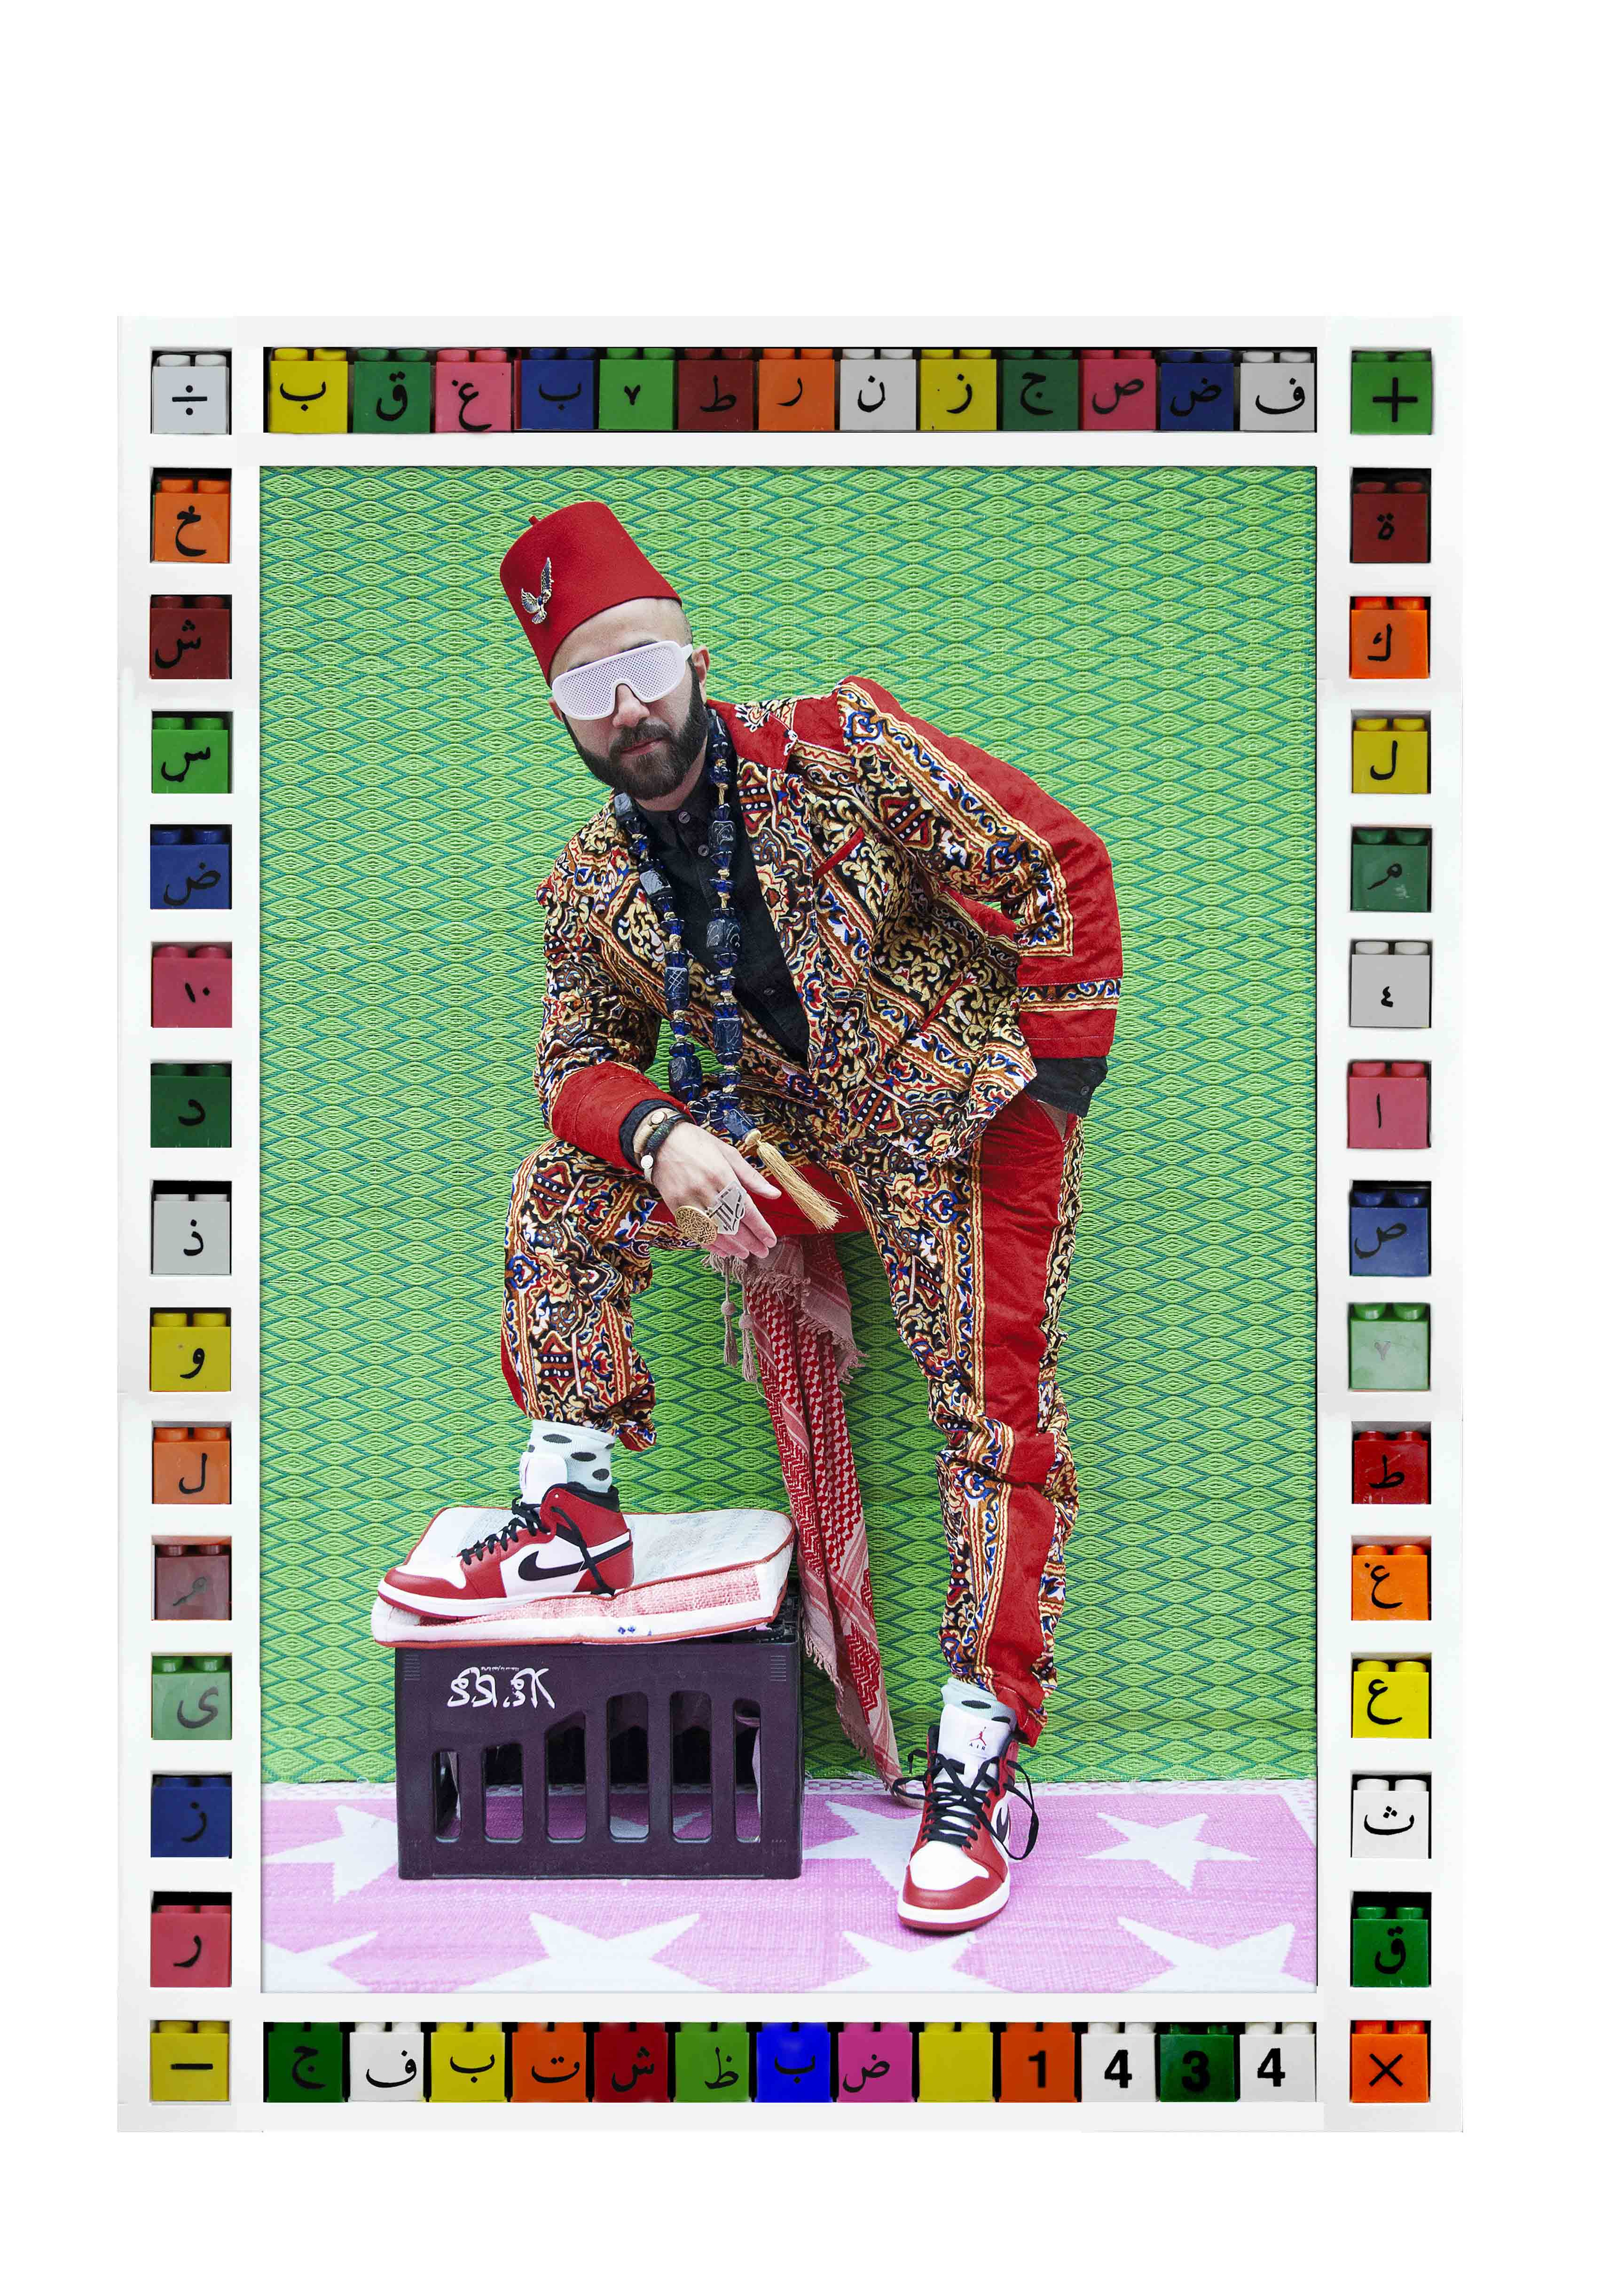 The Narcicyst (Yassin 'Narcy' Alsalman), Photography by Hassan Hajjaj - year 2013, islamic year 1434 © DR Hassan Hajjaj